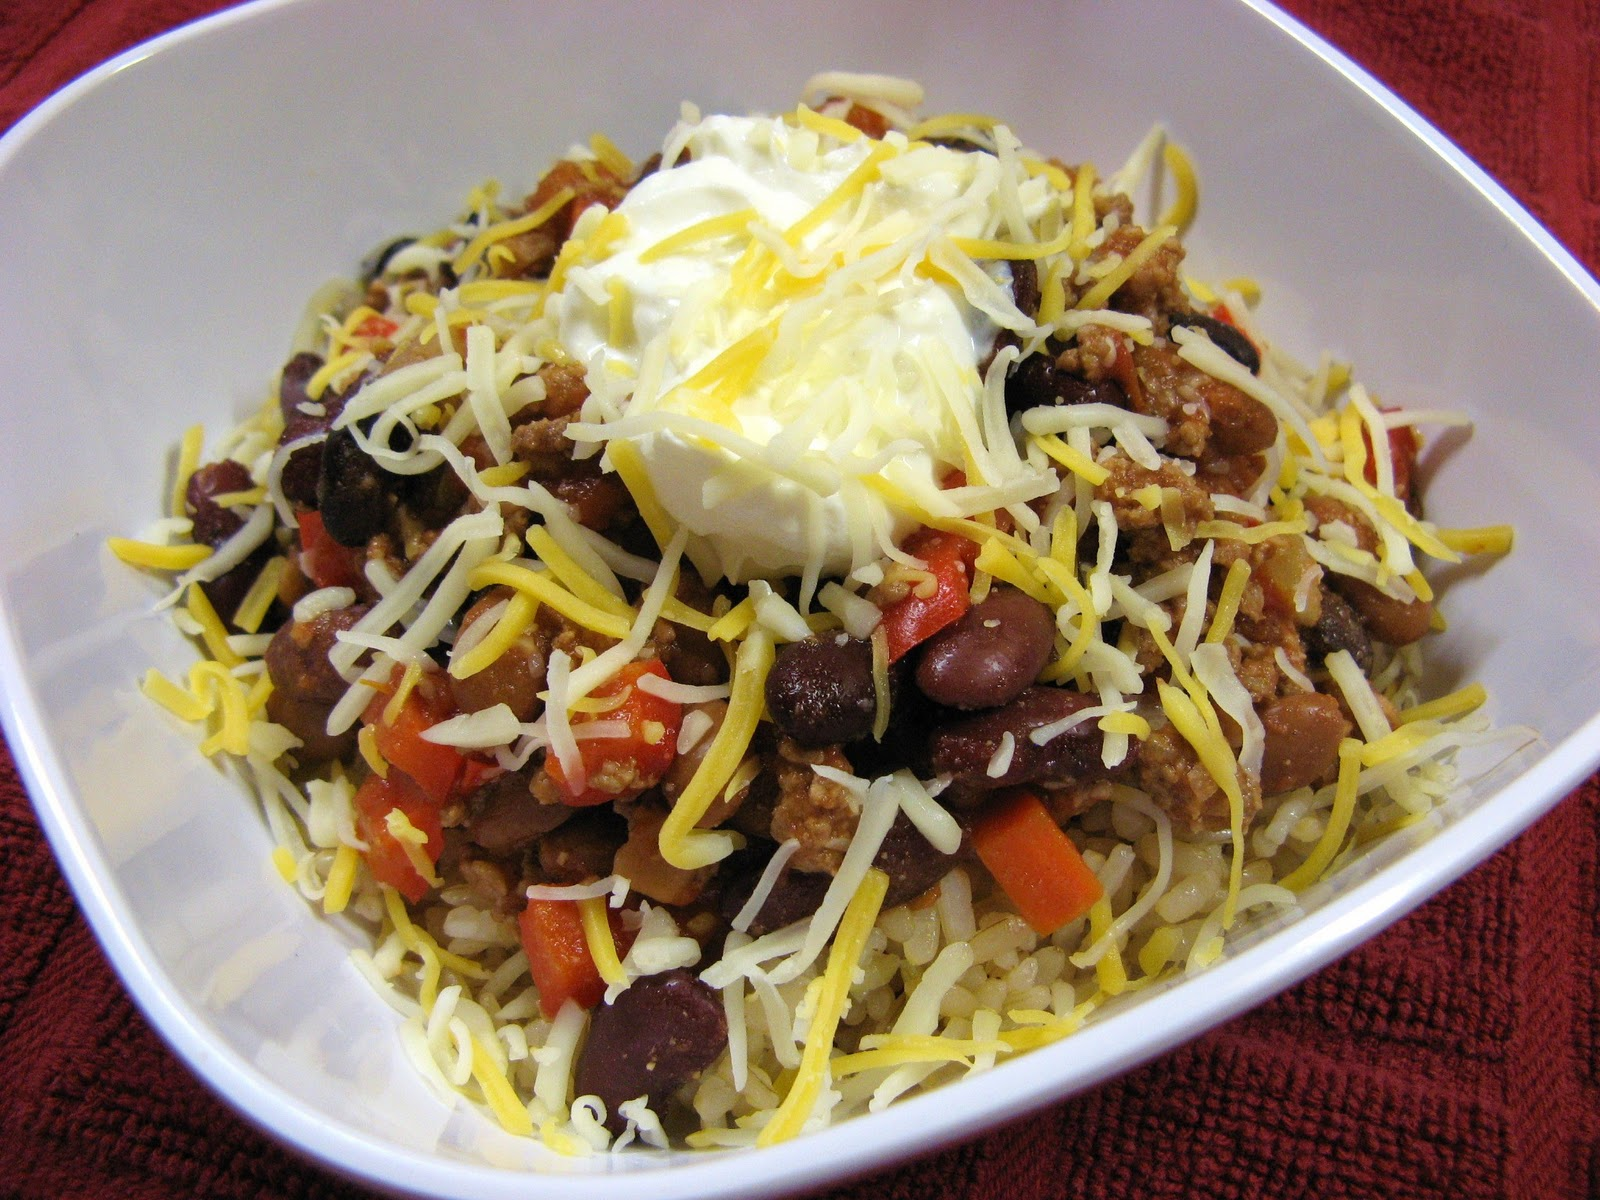 The Well-Fed Newlyweds: Three Bean and Beef Chili